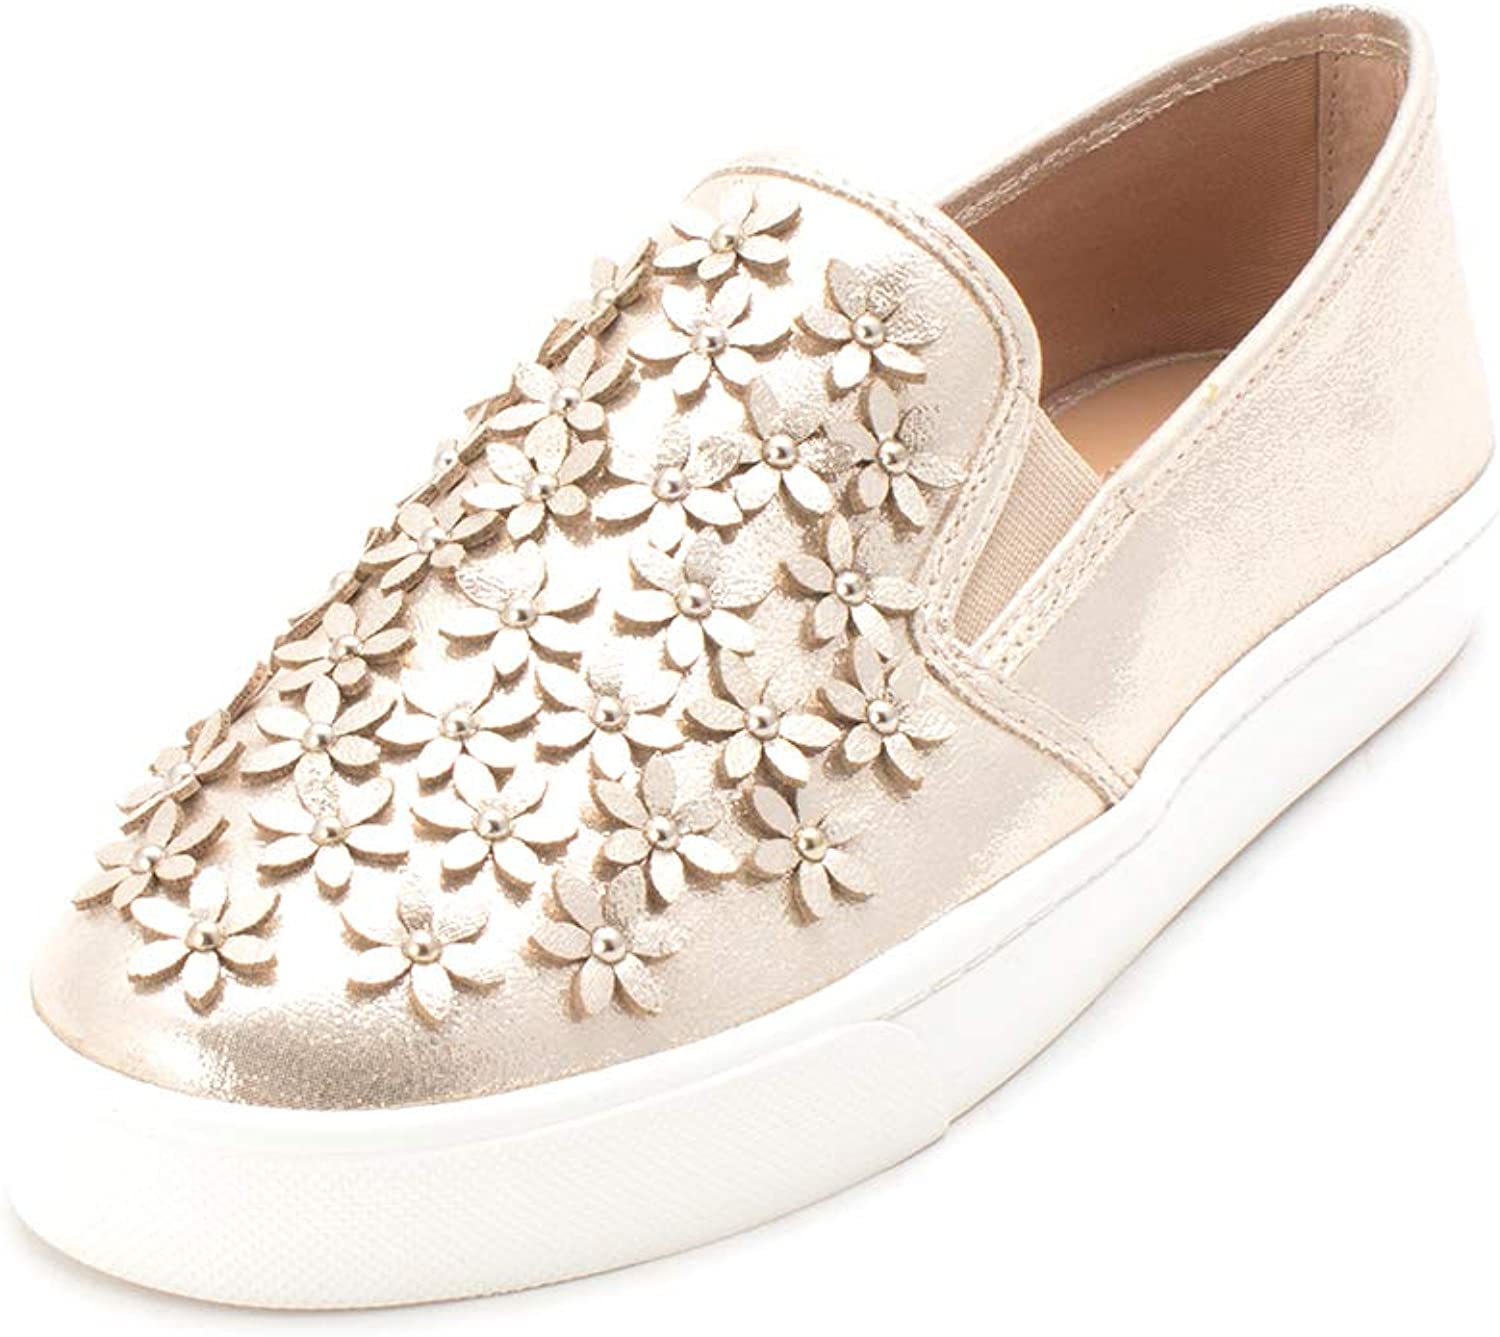 INC International Concepts Womens Sammee6 Low Top Slip On Fashion Sneakers